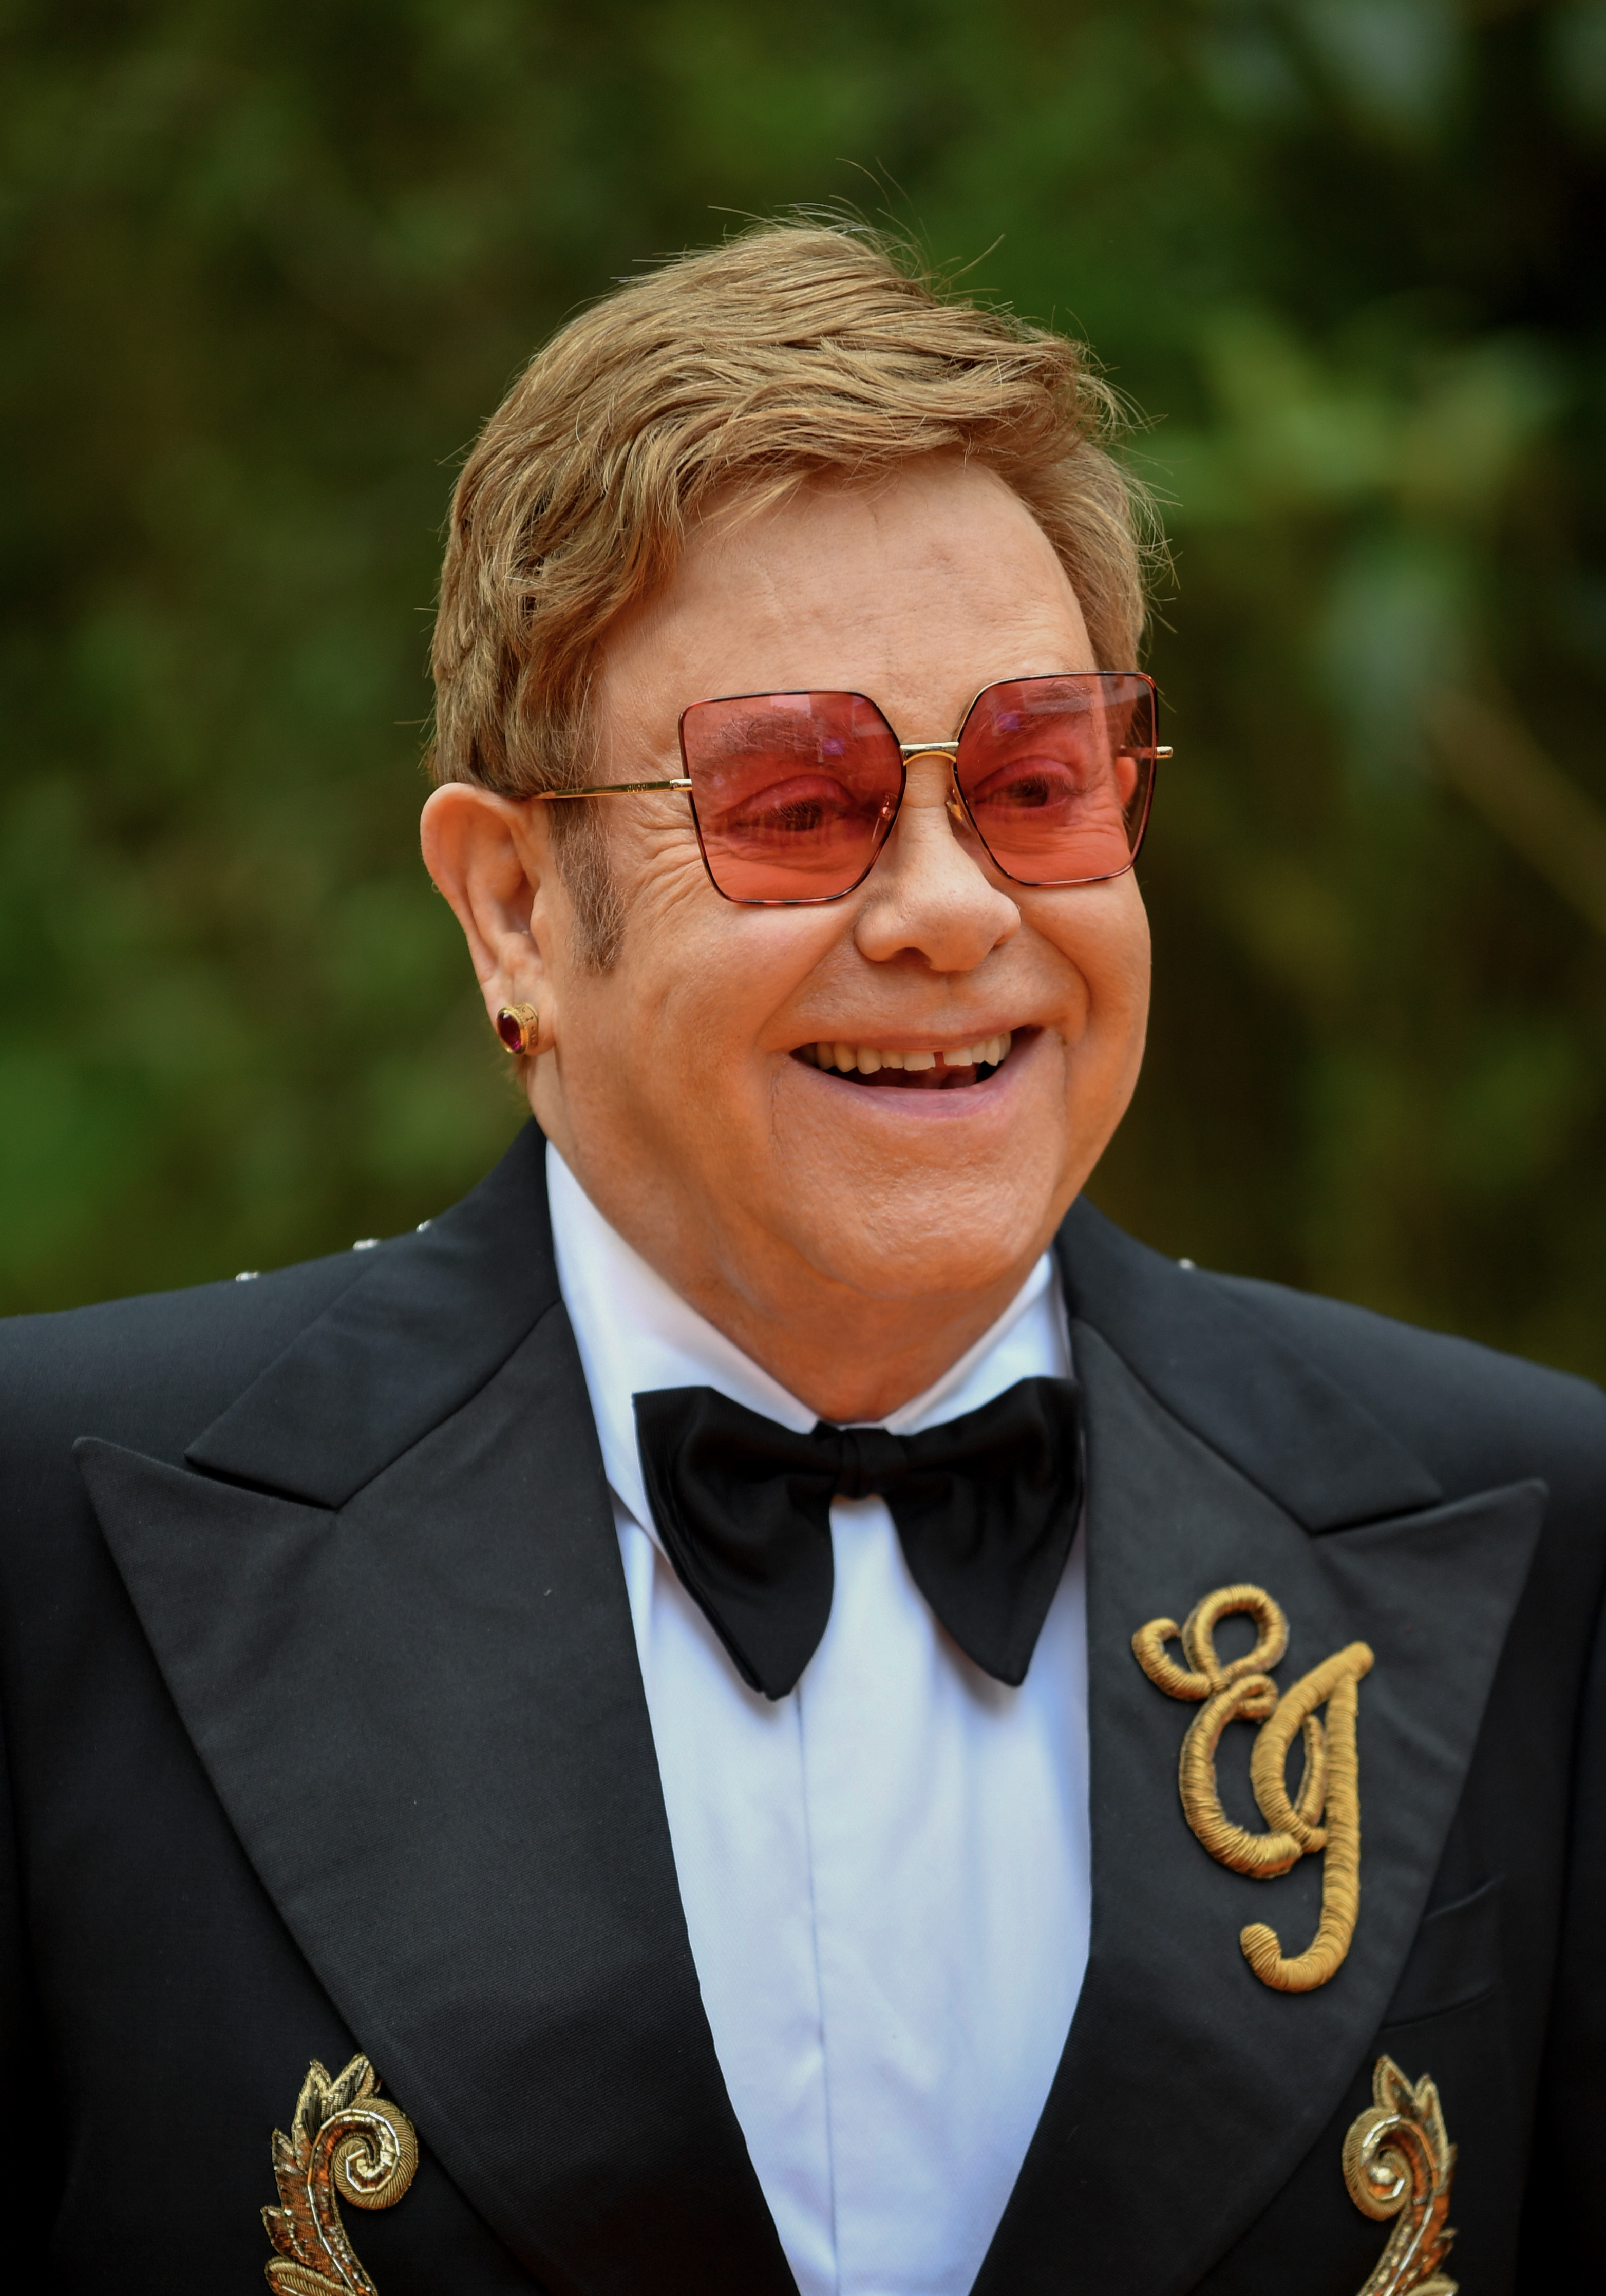 Sir Elton John attends the European Premiere of Disney's  The Lion King  at Odeon Luxe Leicester Square on July 14, 2019 in London, England.